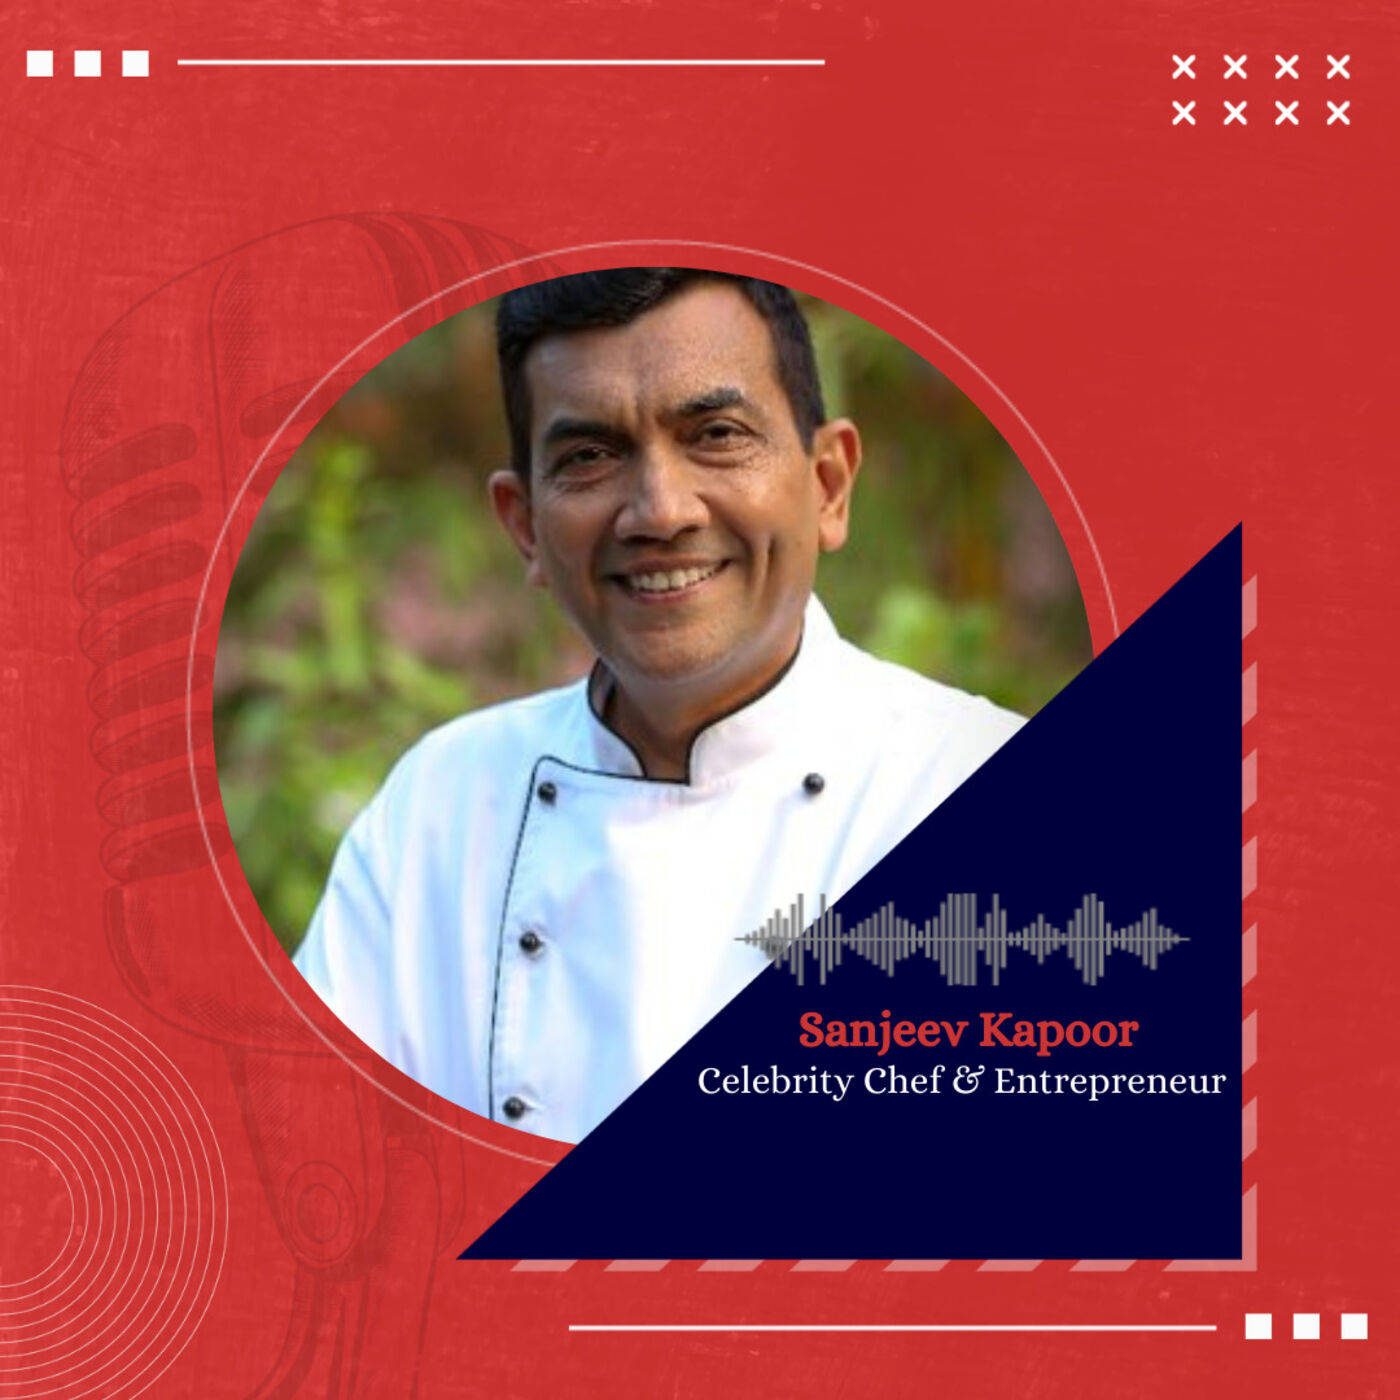 A recipe for success with Chef and Entrepreneur, Sanjeev Kapoor